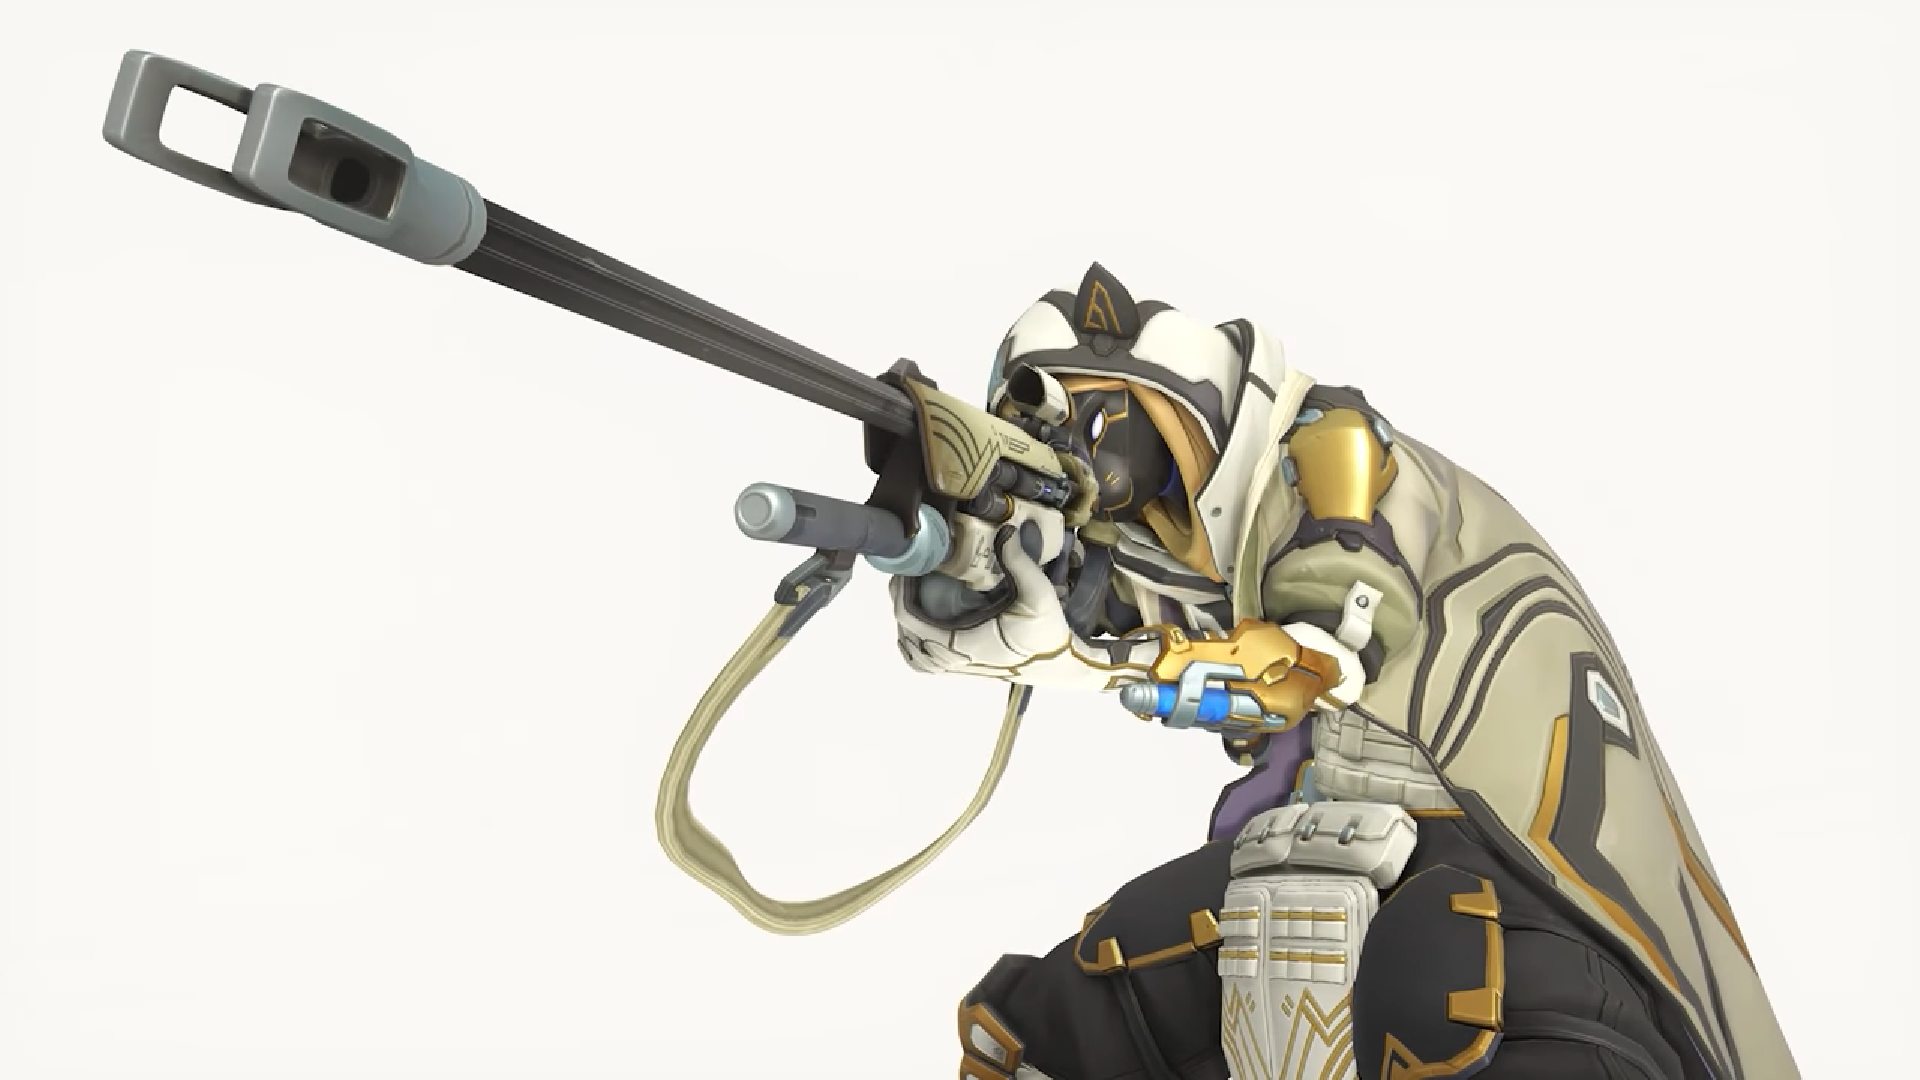 You have to win 9 Overwatch games to unlock Ana's Bastet skin.